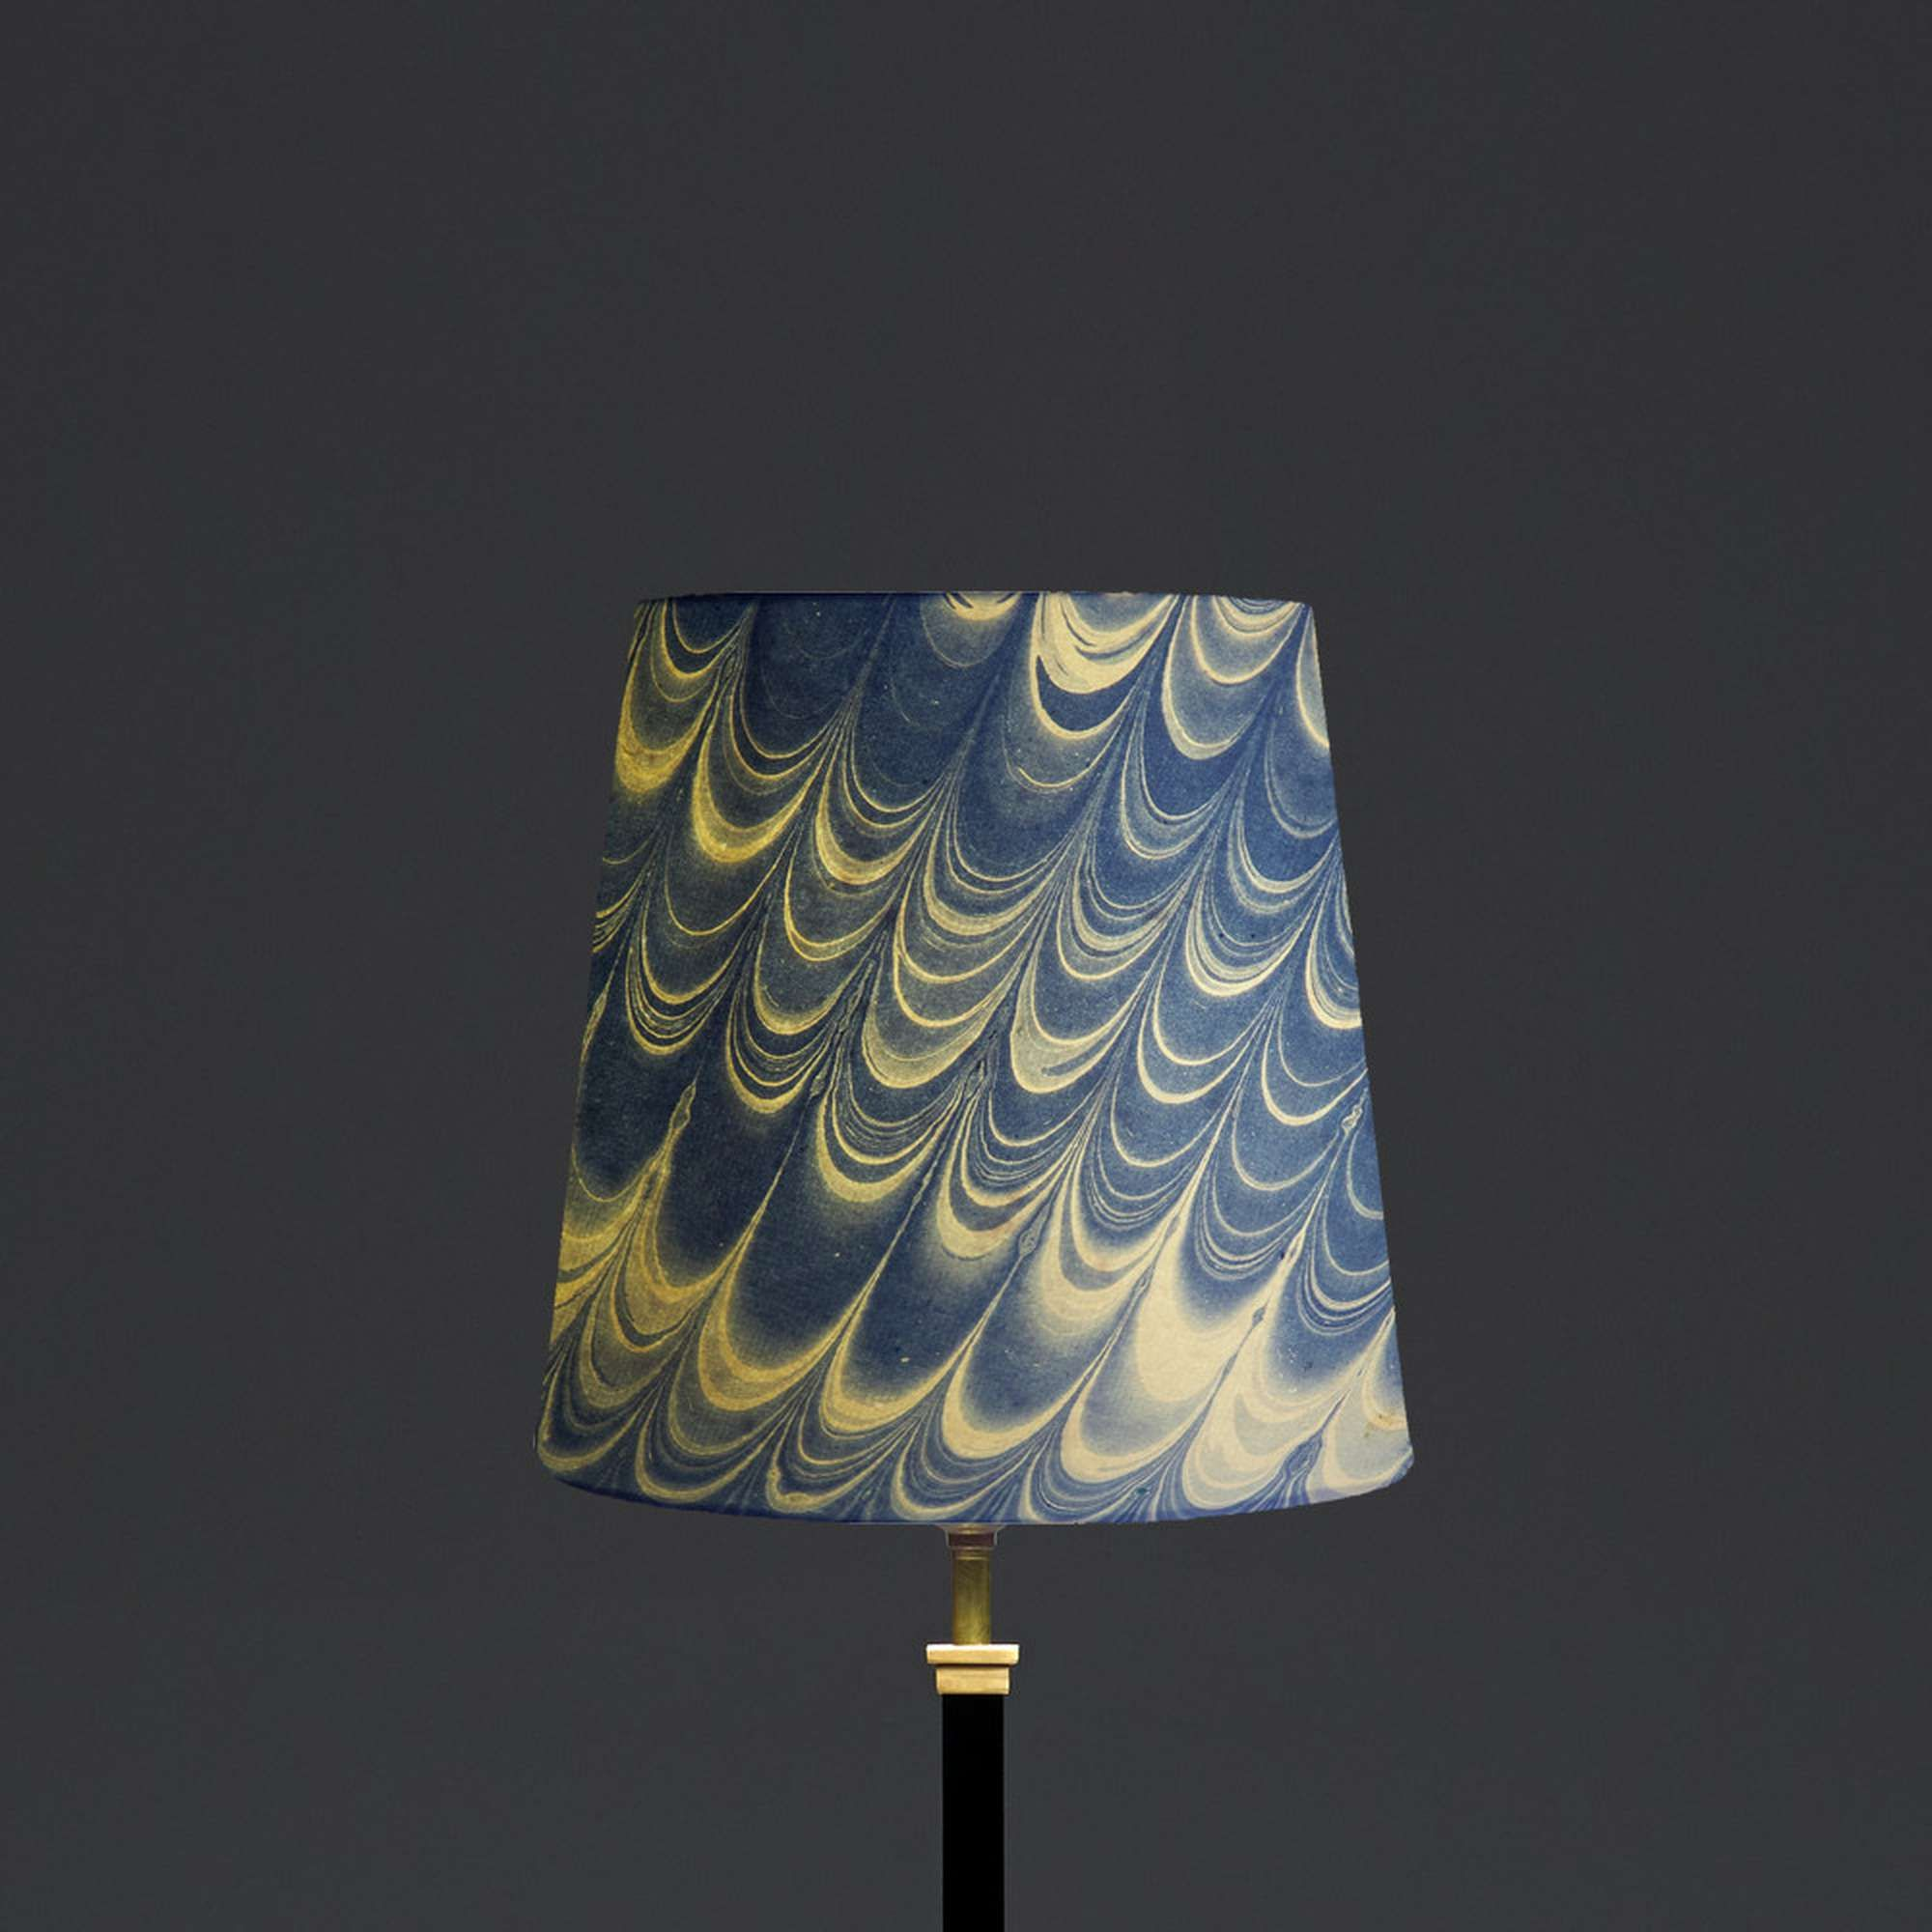 25cm tall tapered hand made marbled paper shade in blue nera